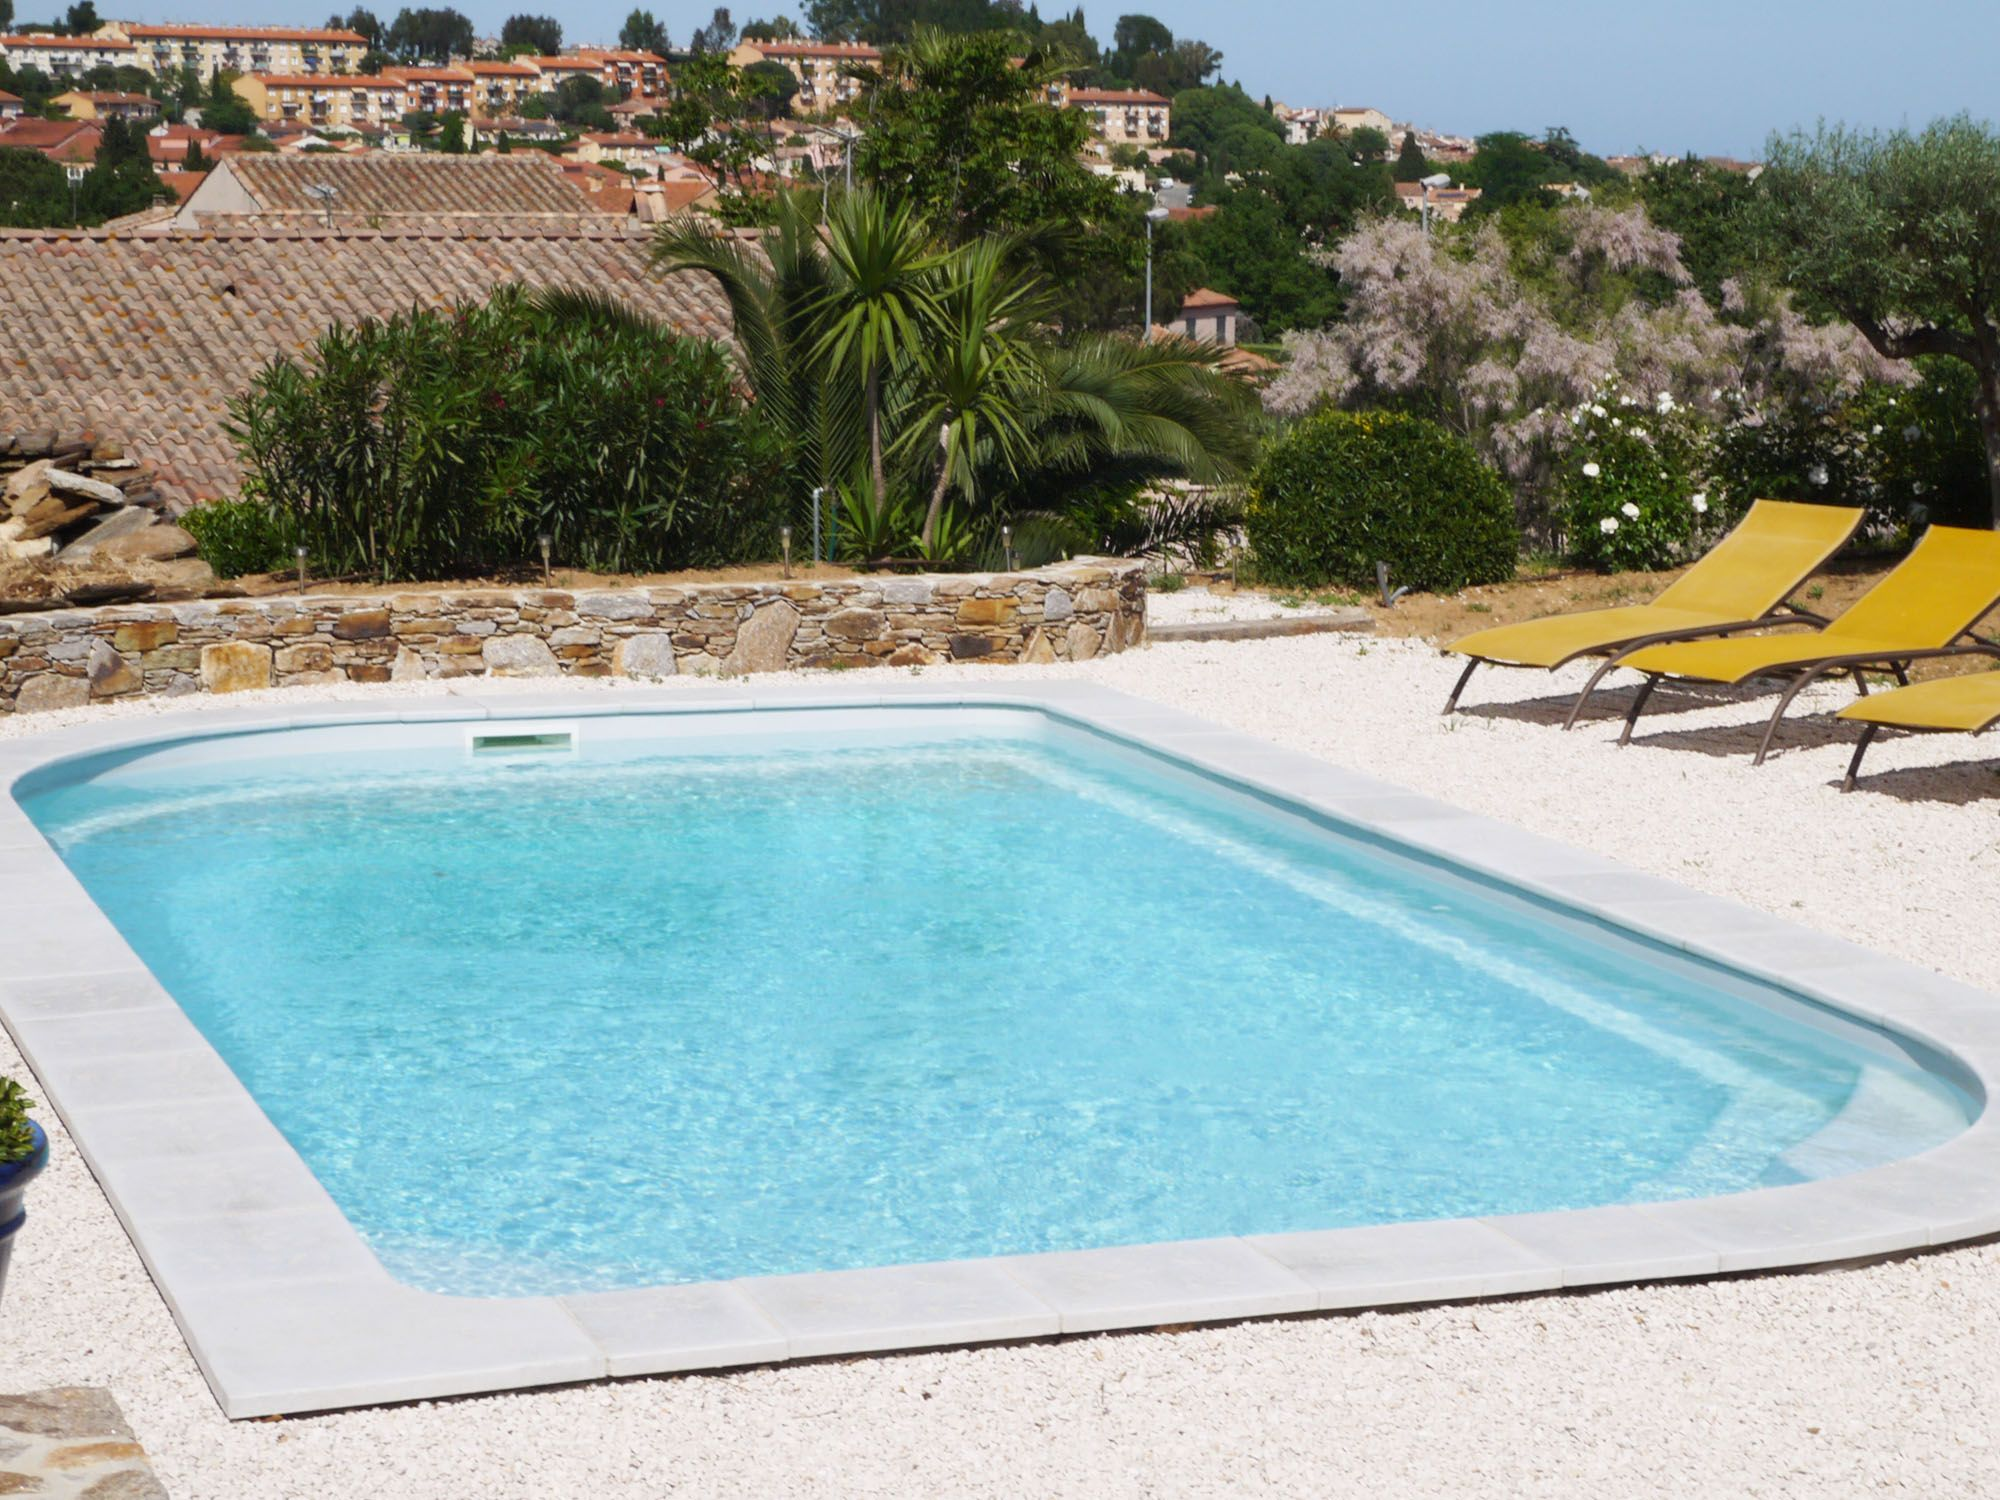 Belcanto 81 Piscine Coque Polyester Fabrication Francaise Fond Incline Dimensions 8 00 X 4 00 X 1 00 Prix Piscine Piscine Coque Piscine Coque Polyester